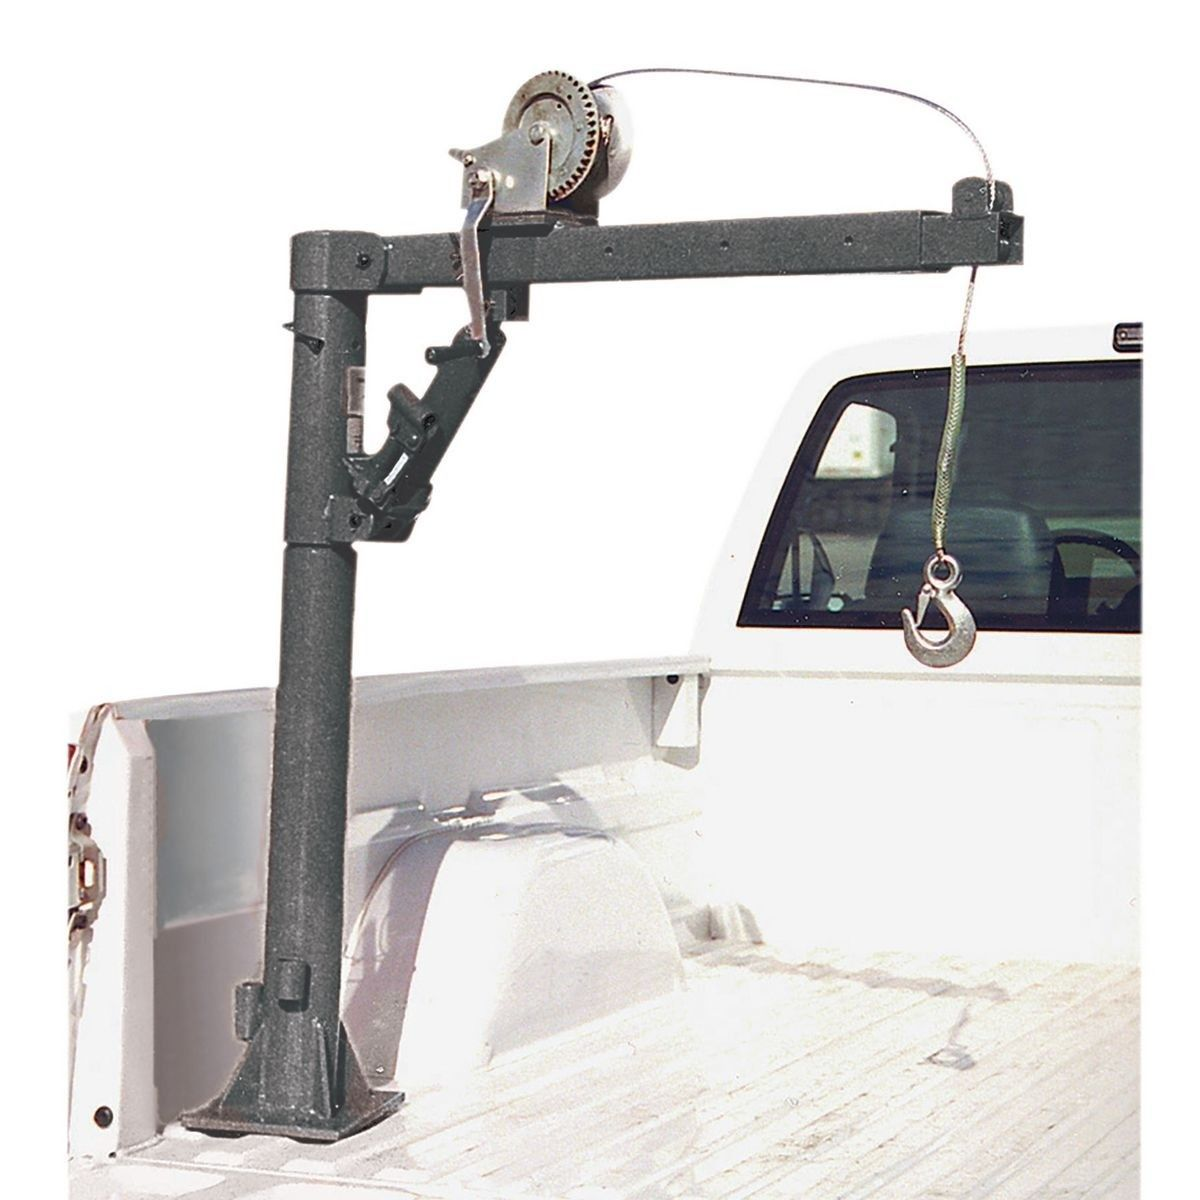 Pickup Truck Bed Crane with Hand Winch 1000 lb. Capacity